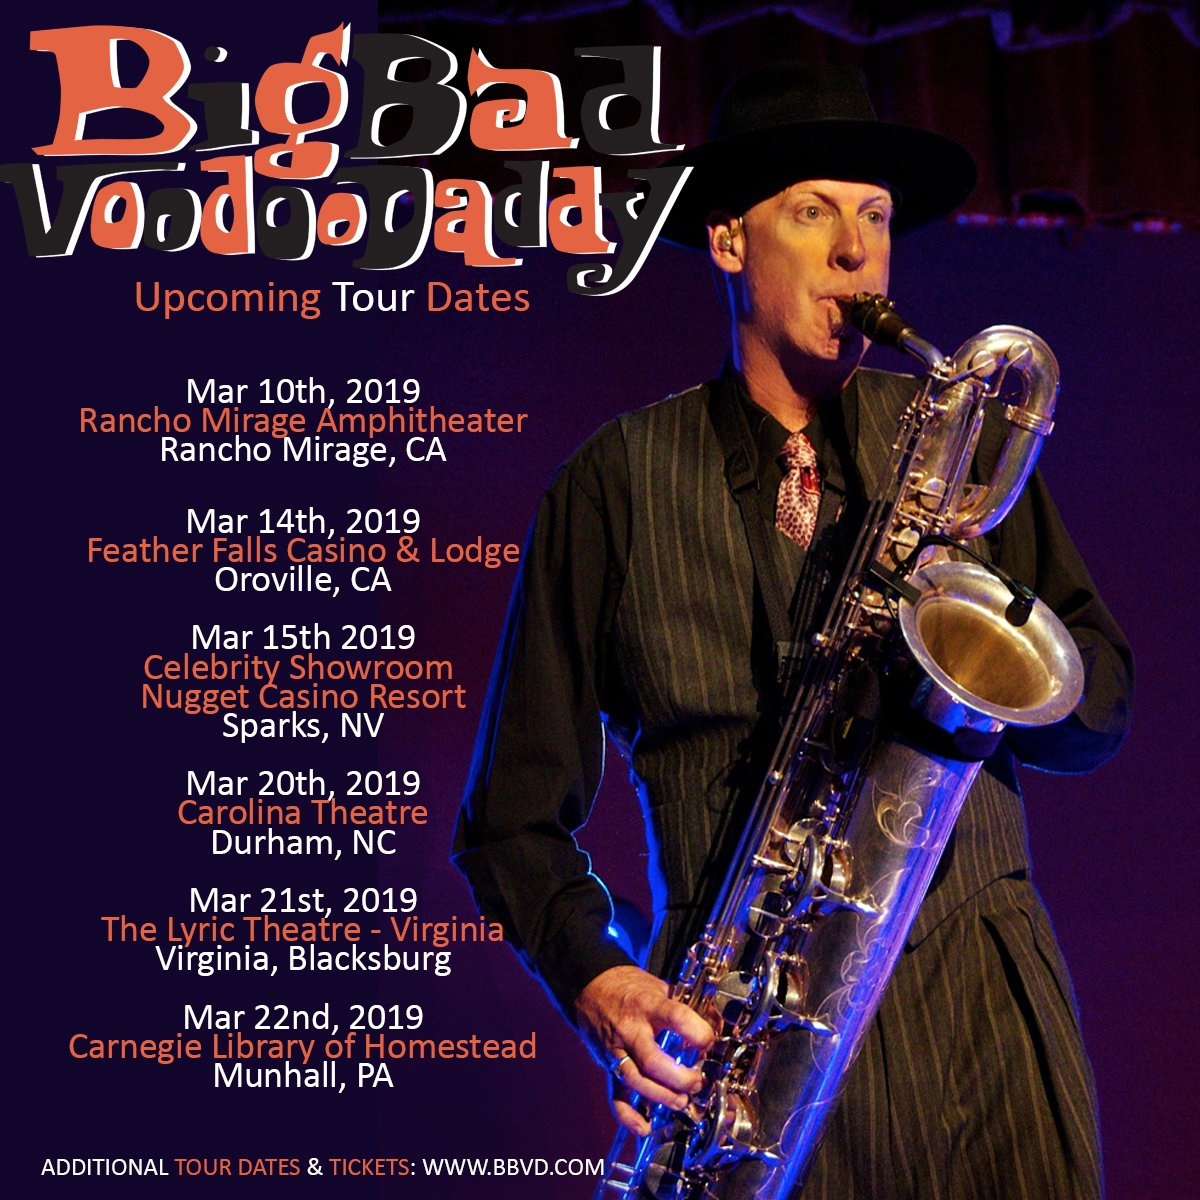 Upcoming @BBVD tour dates!  Get tickets and more information here: http://www.BBVD.com   #swingmusic #bbvdtour2019 #25yearsofbbvd